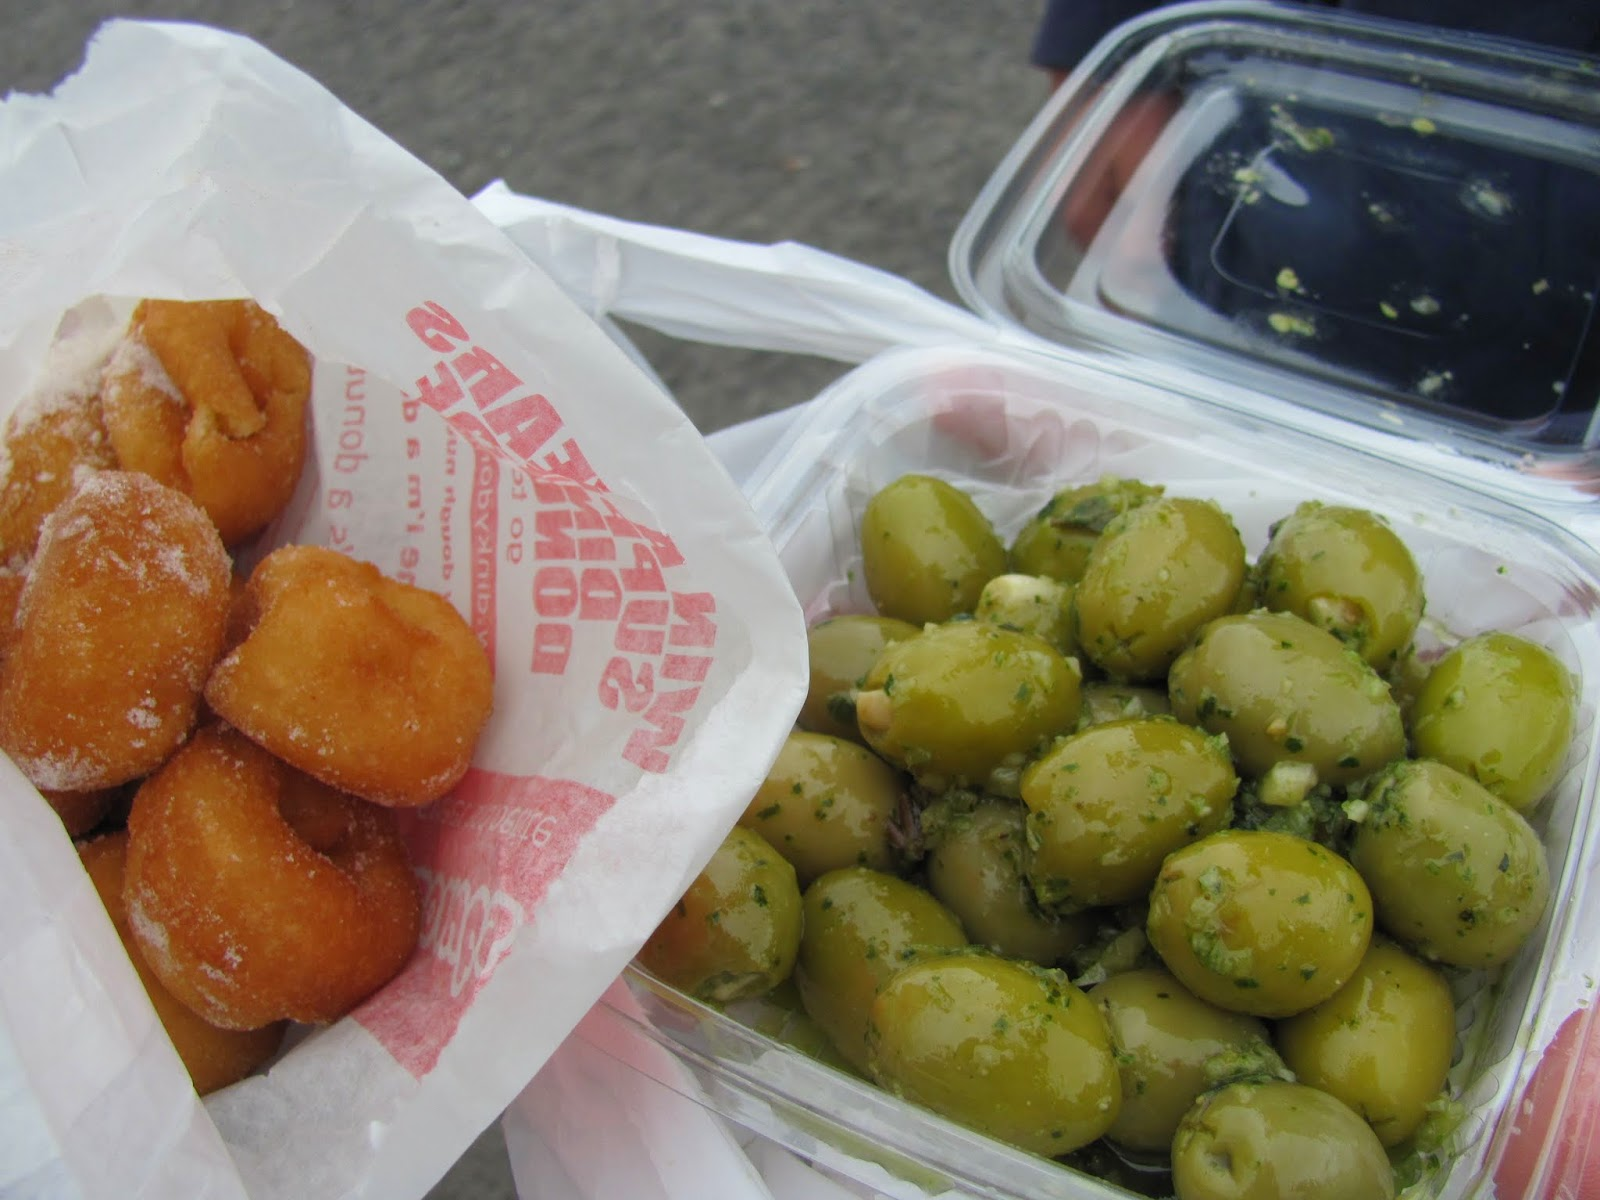 Donuts and Olives